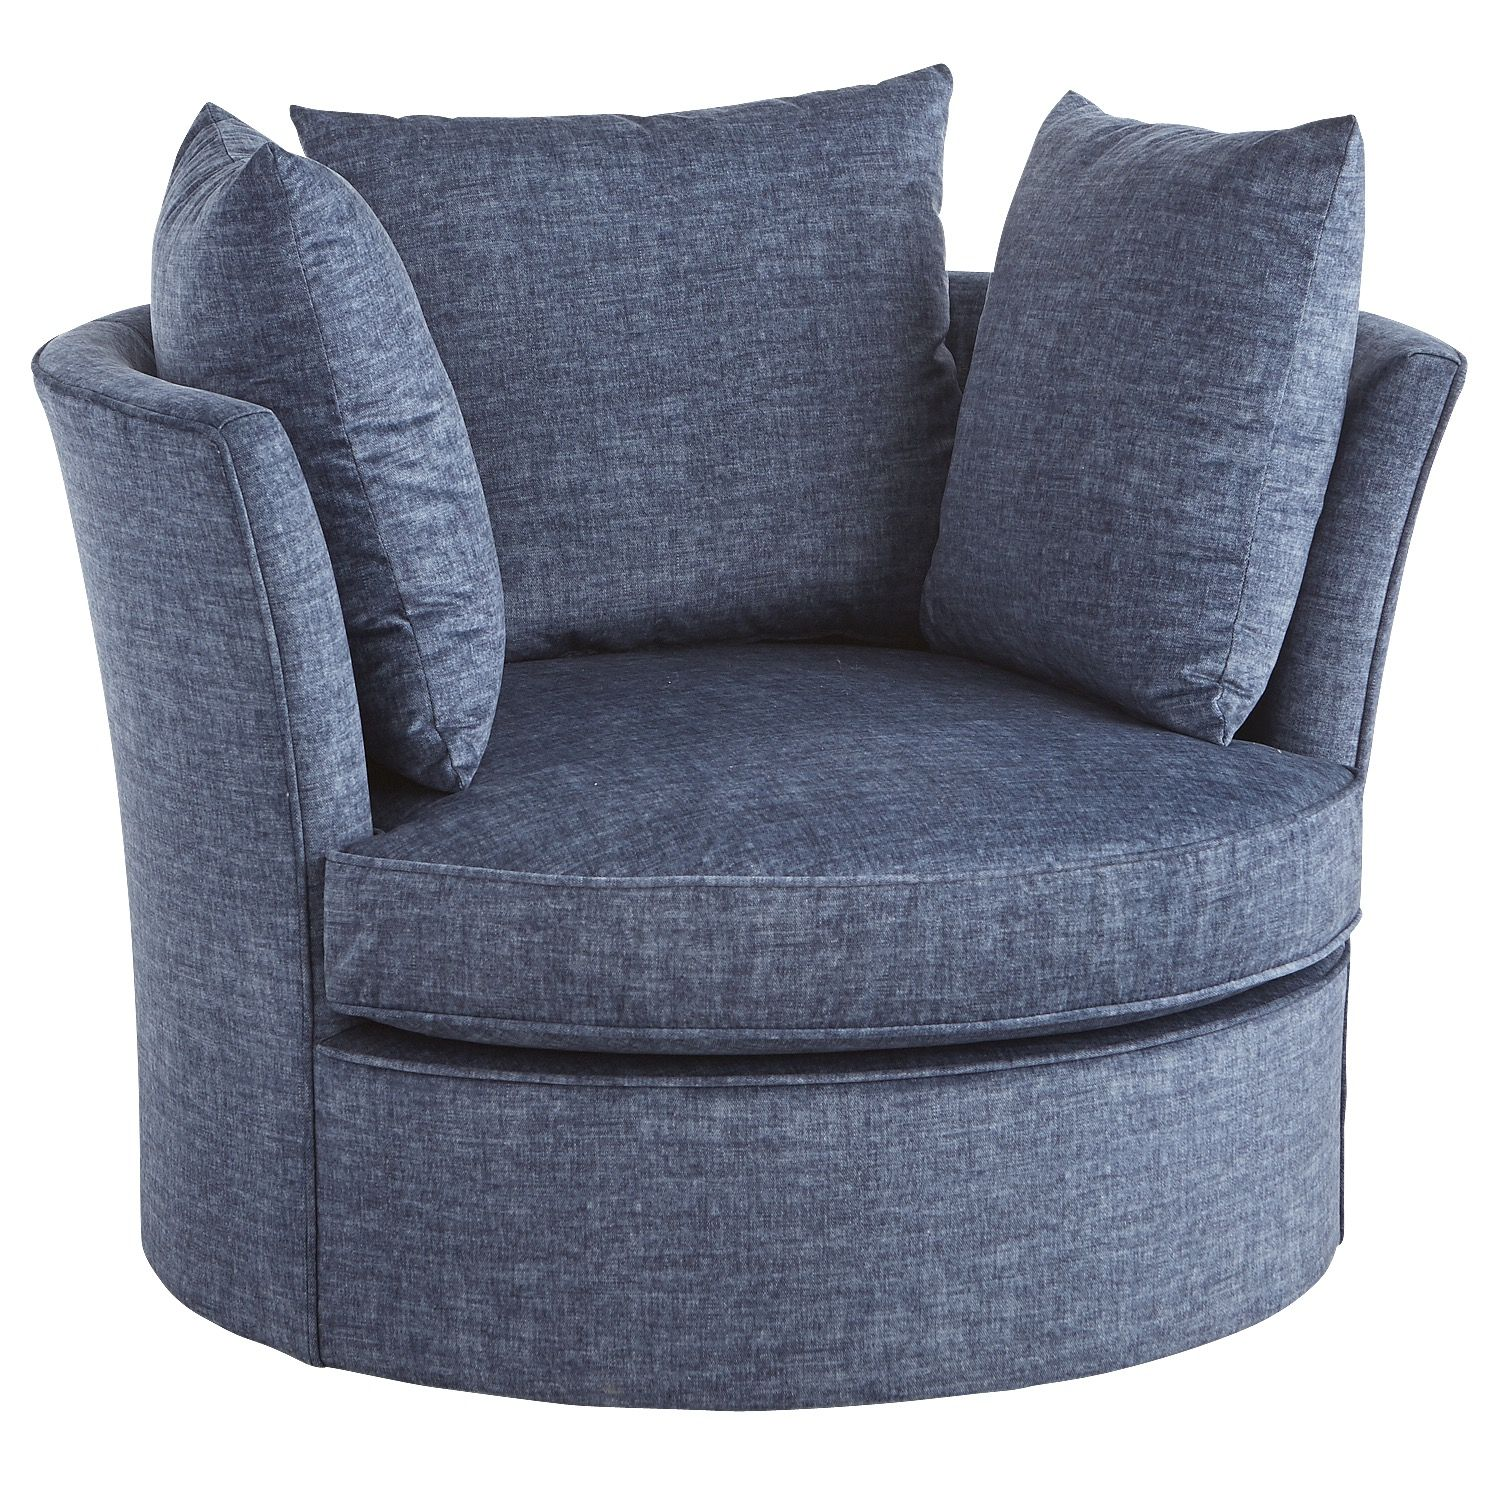 lounge swivel amazing with round accent oval oversized awesome roselawnlutheran chair